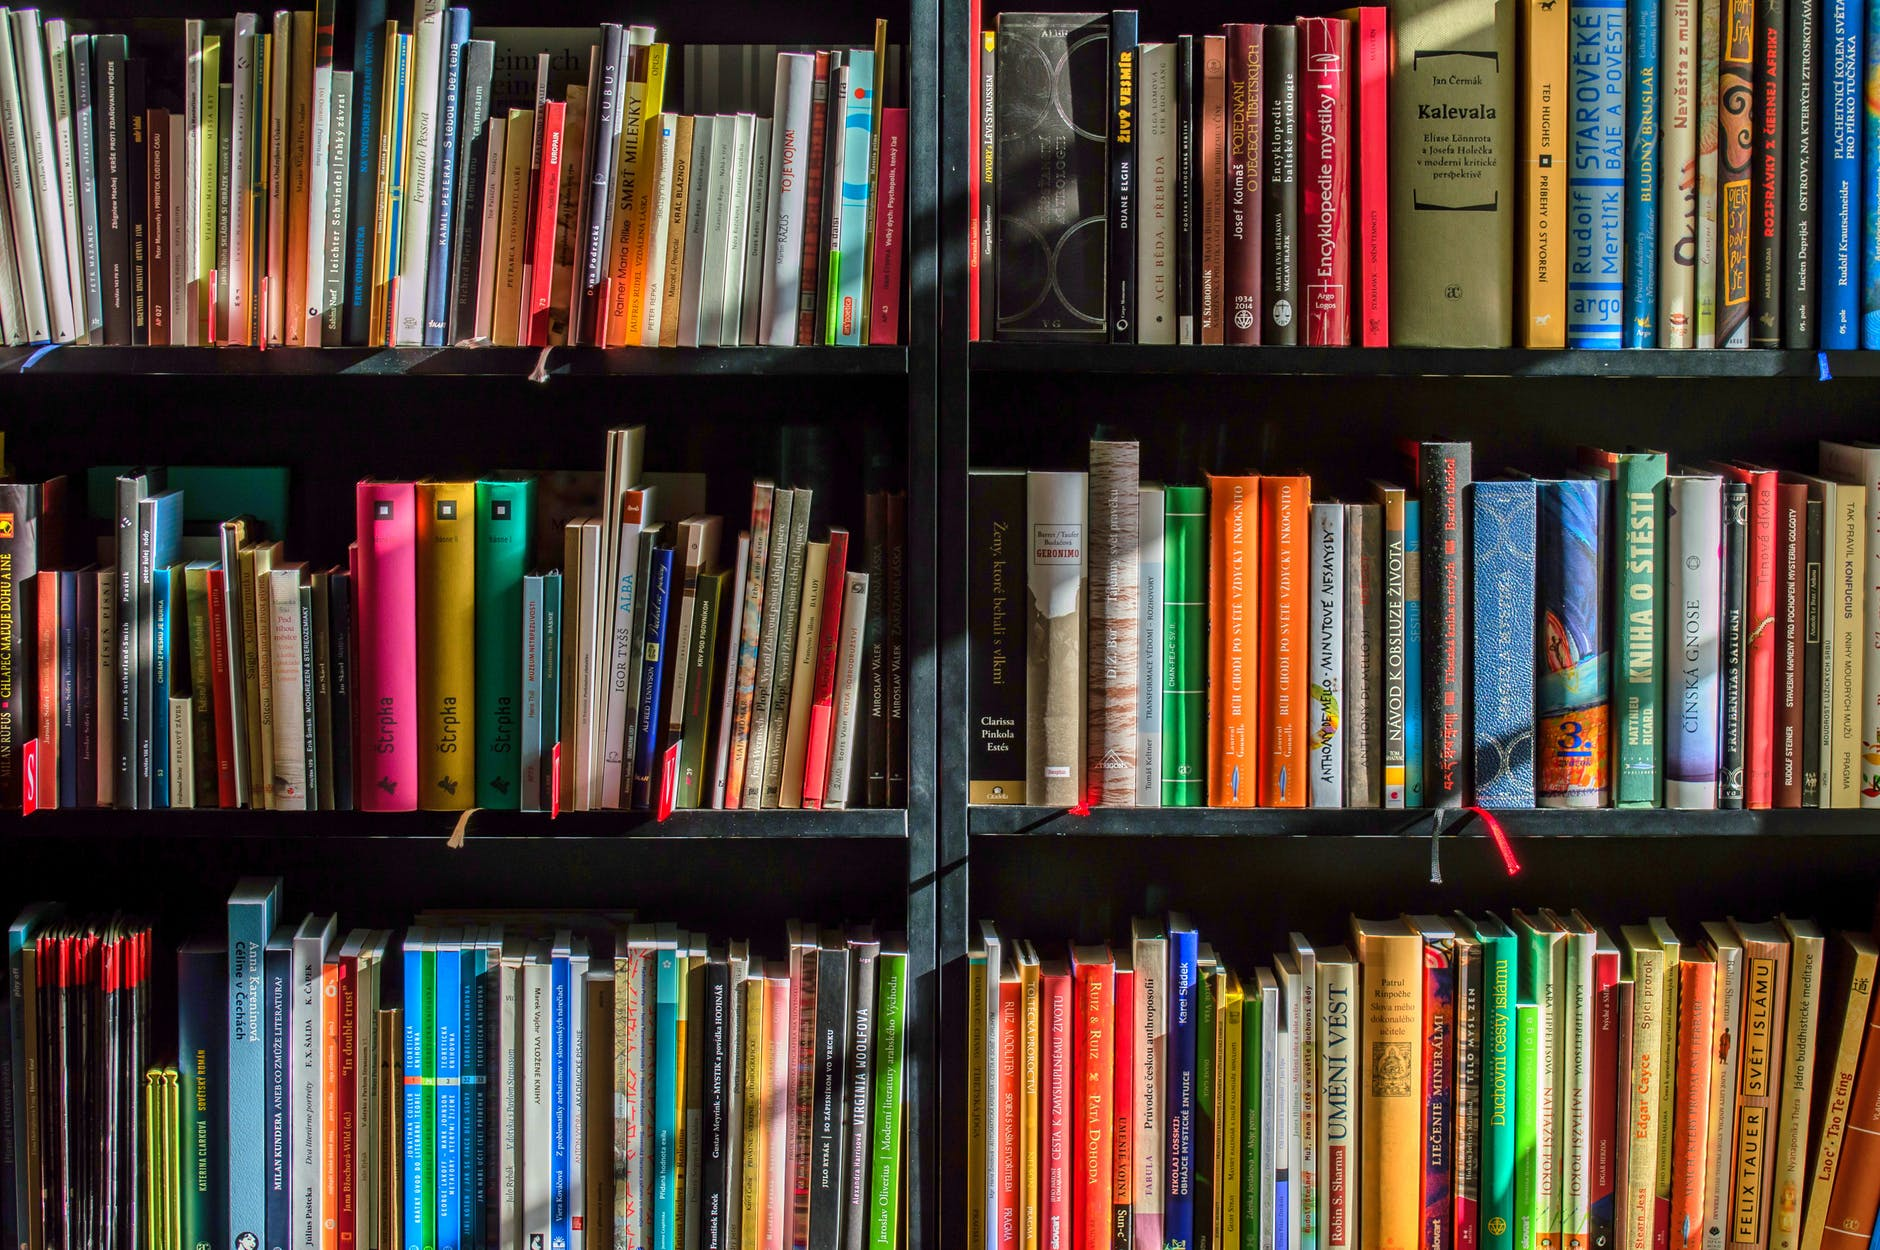 a bookshelf full of colorful books. One must be a favorite...